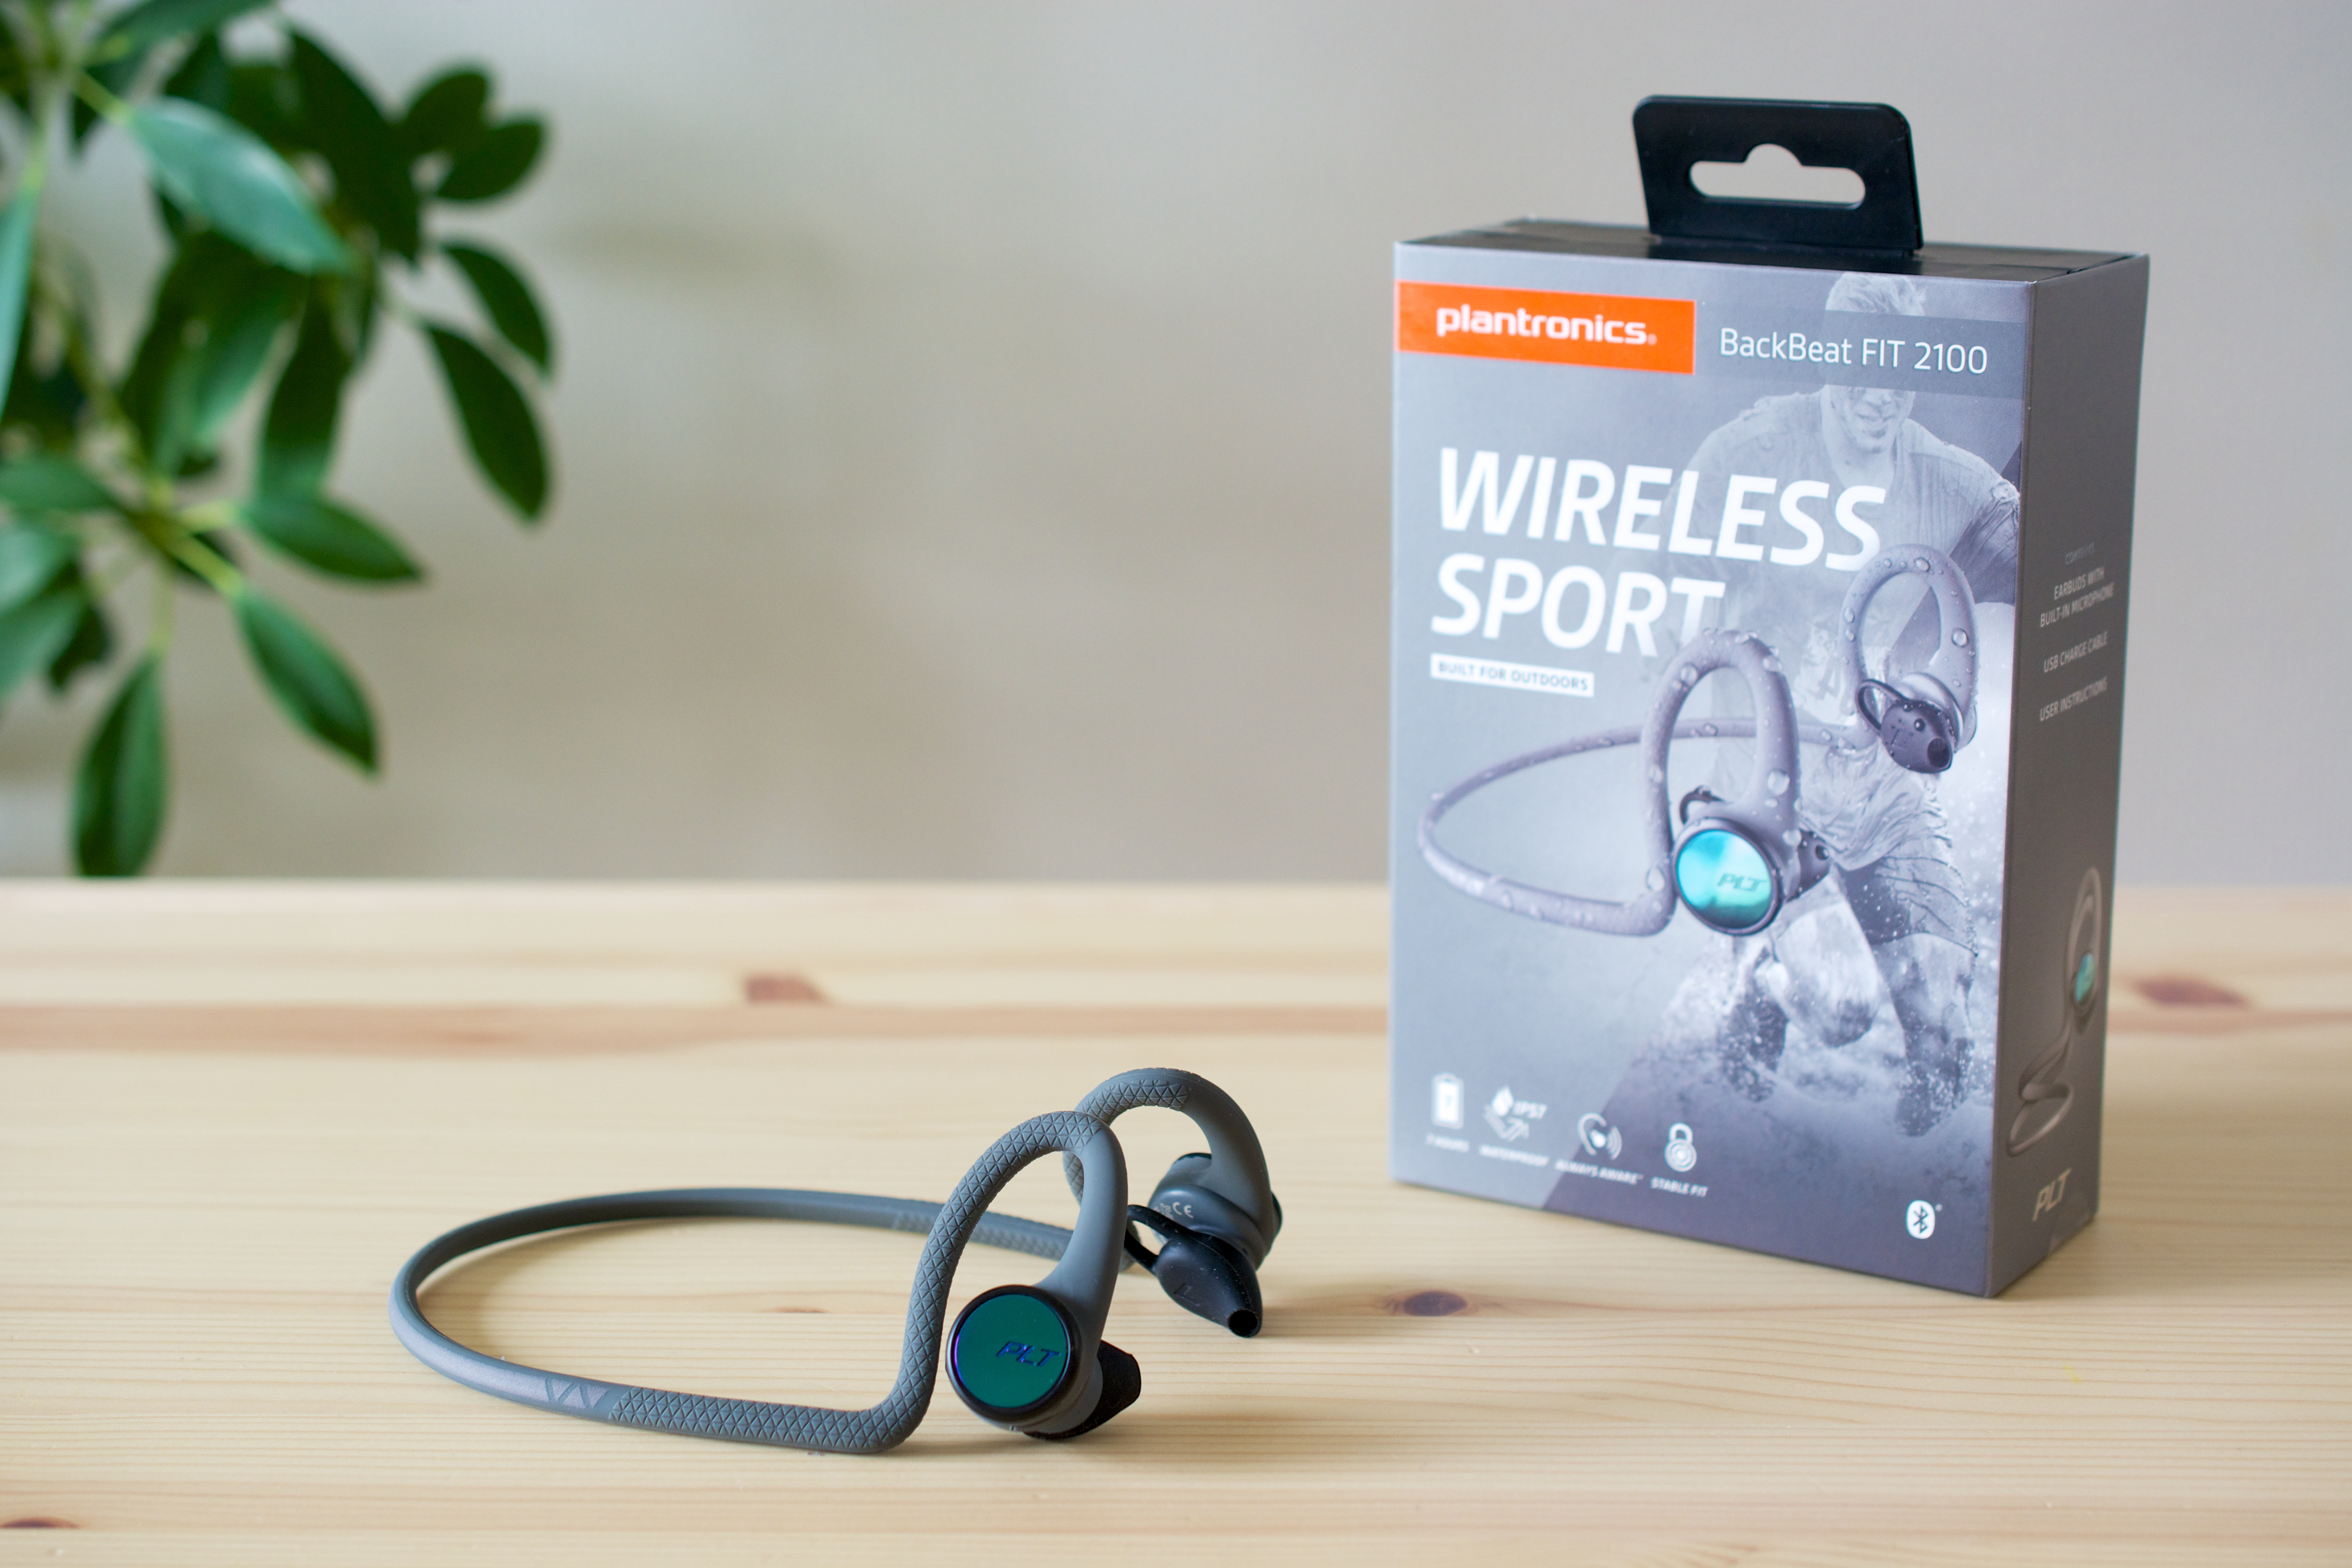 [Plantronics] BackBeat FIT 2100